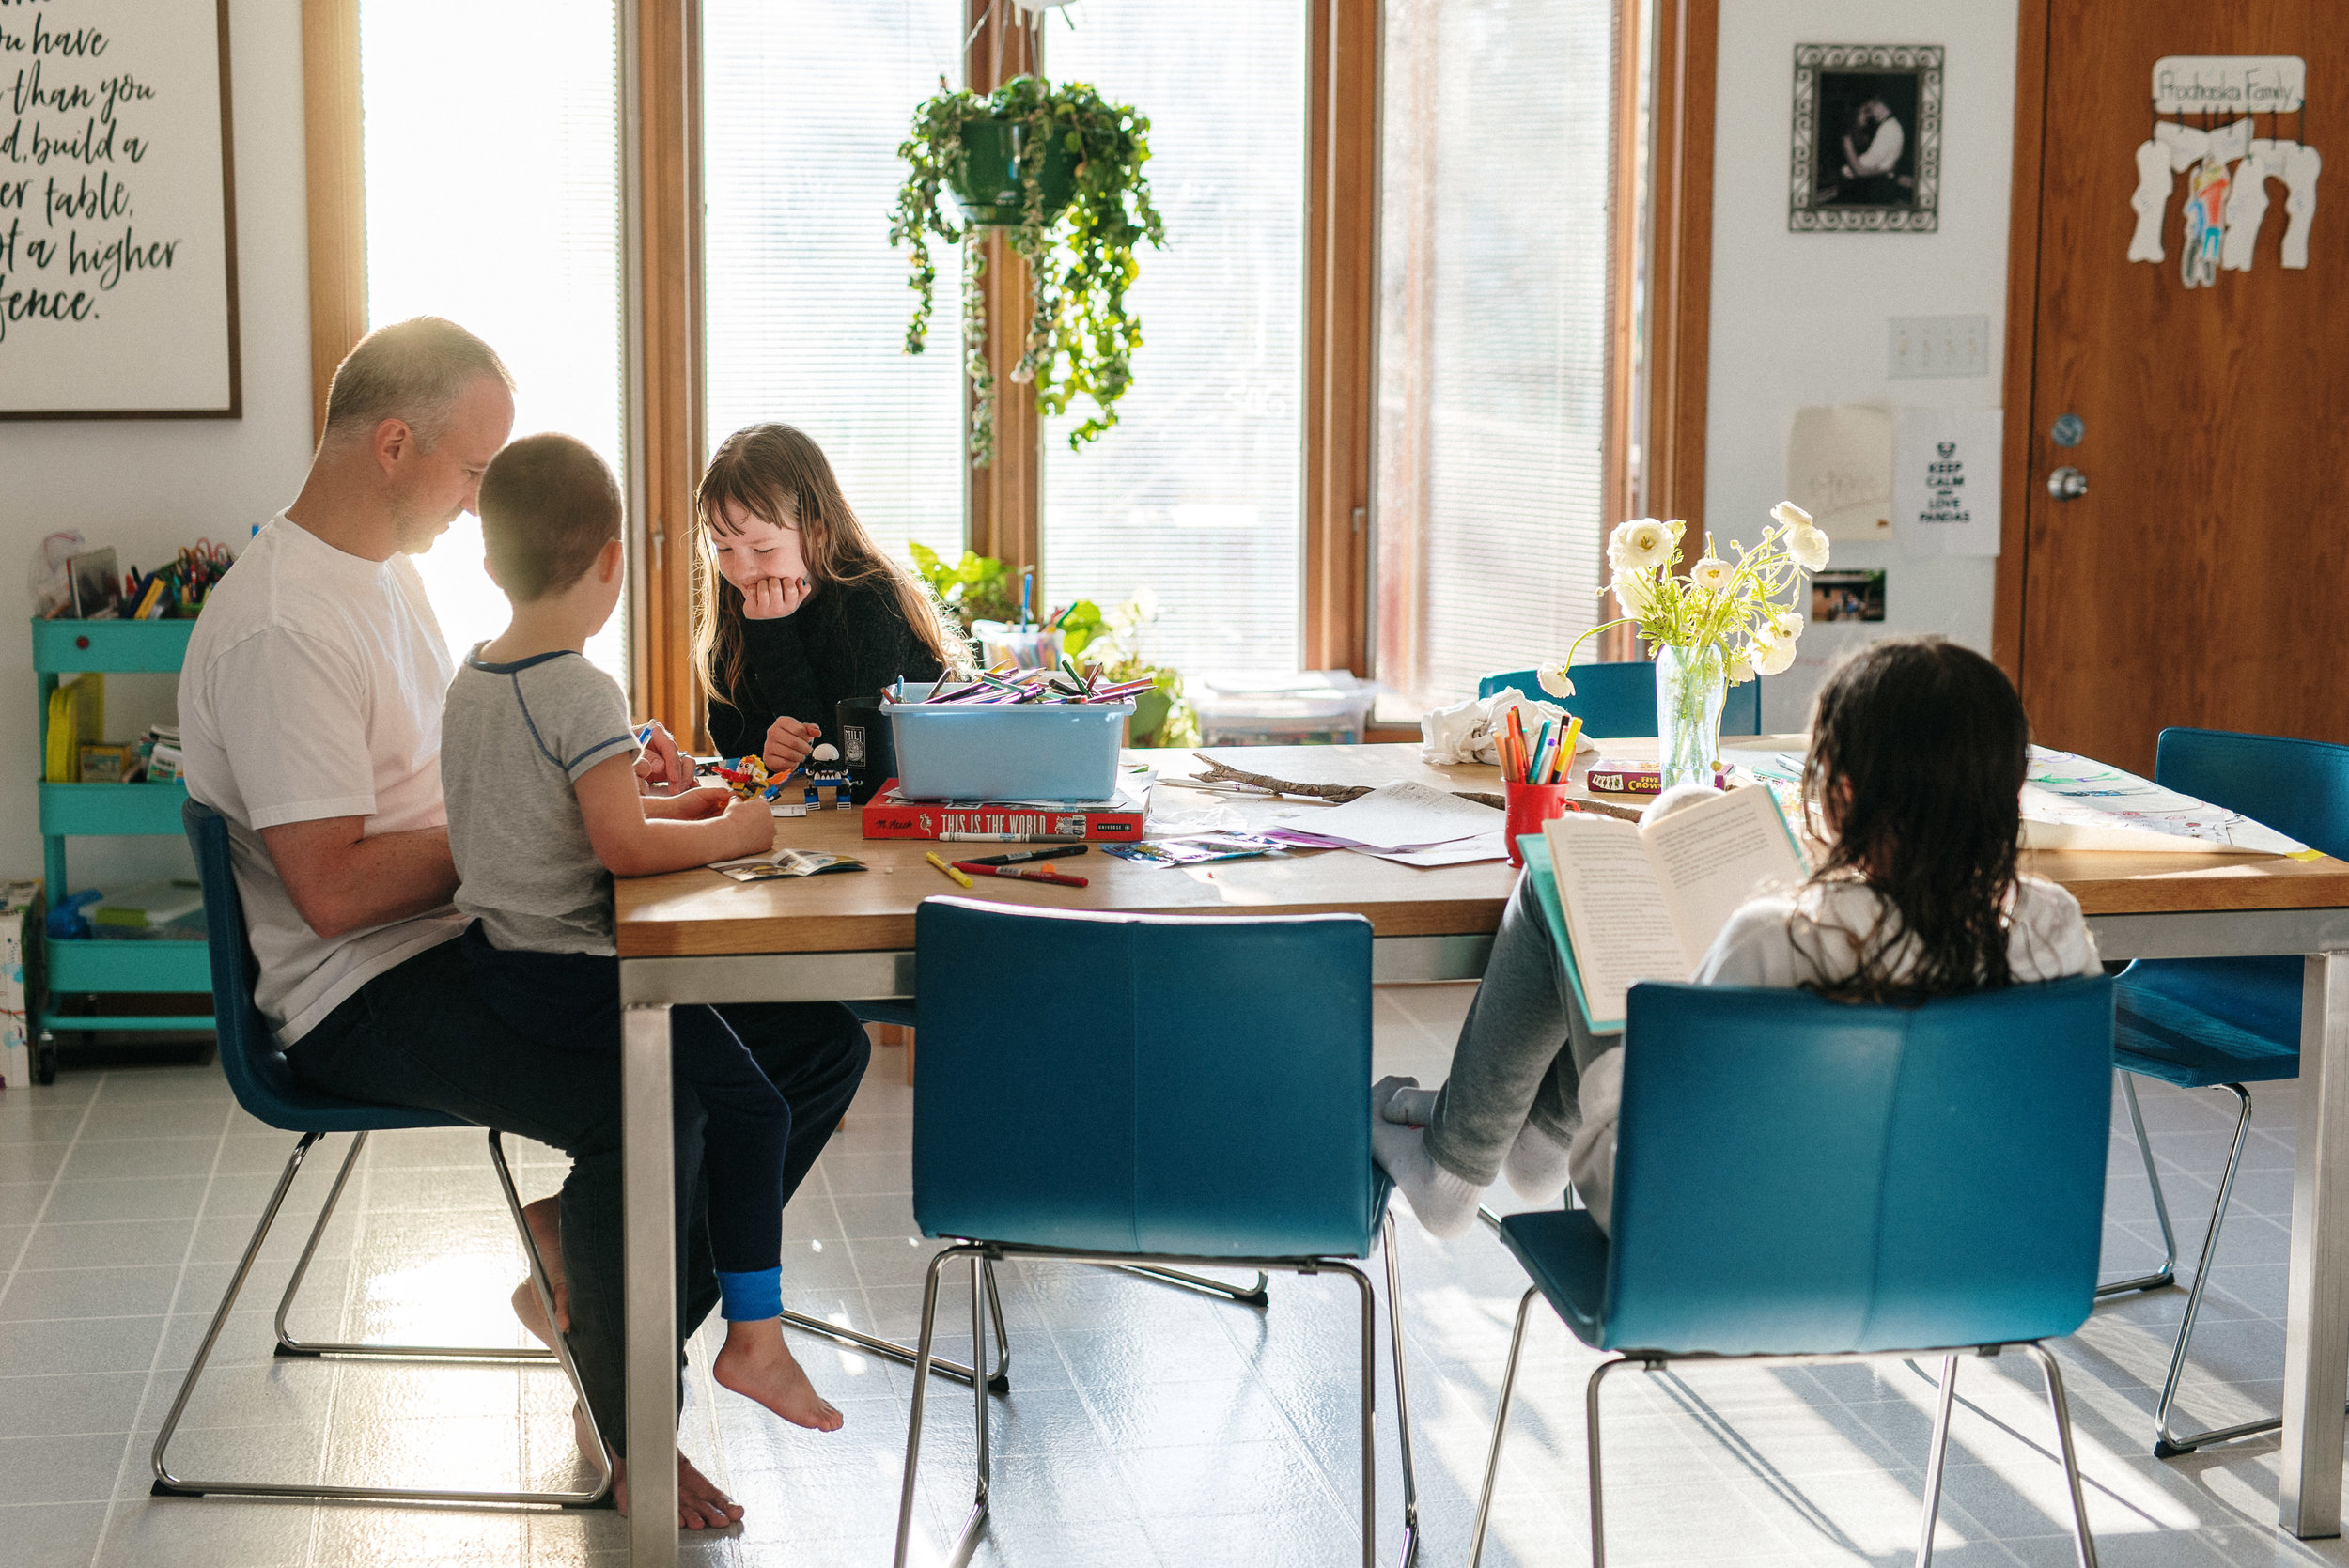 family at kitchen table.jpg